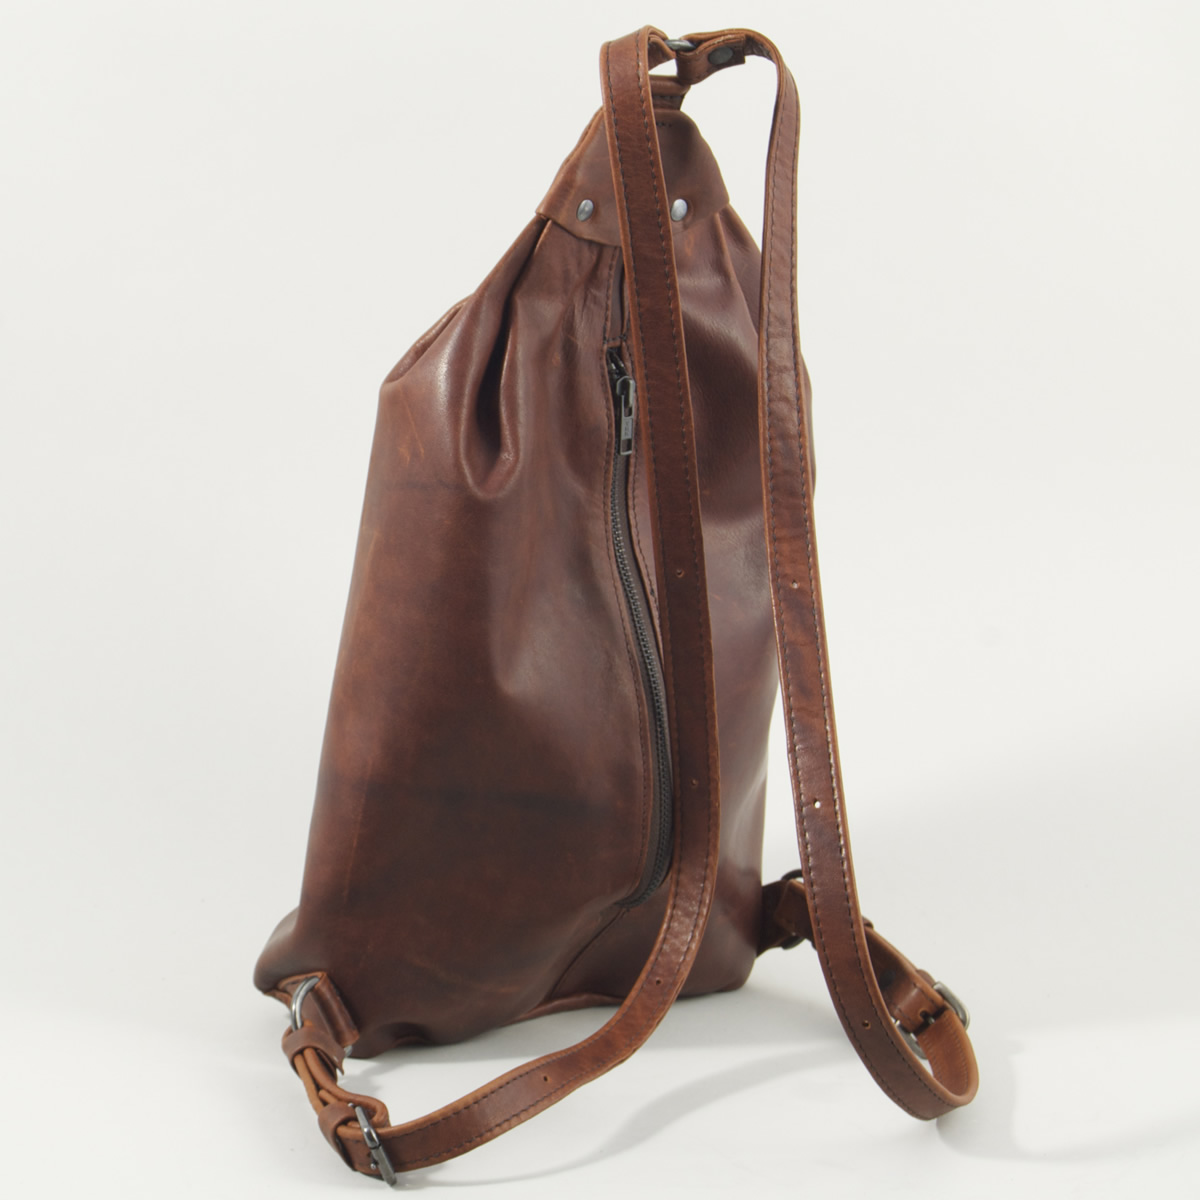 The Small Knapsack